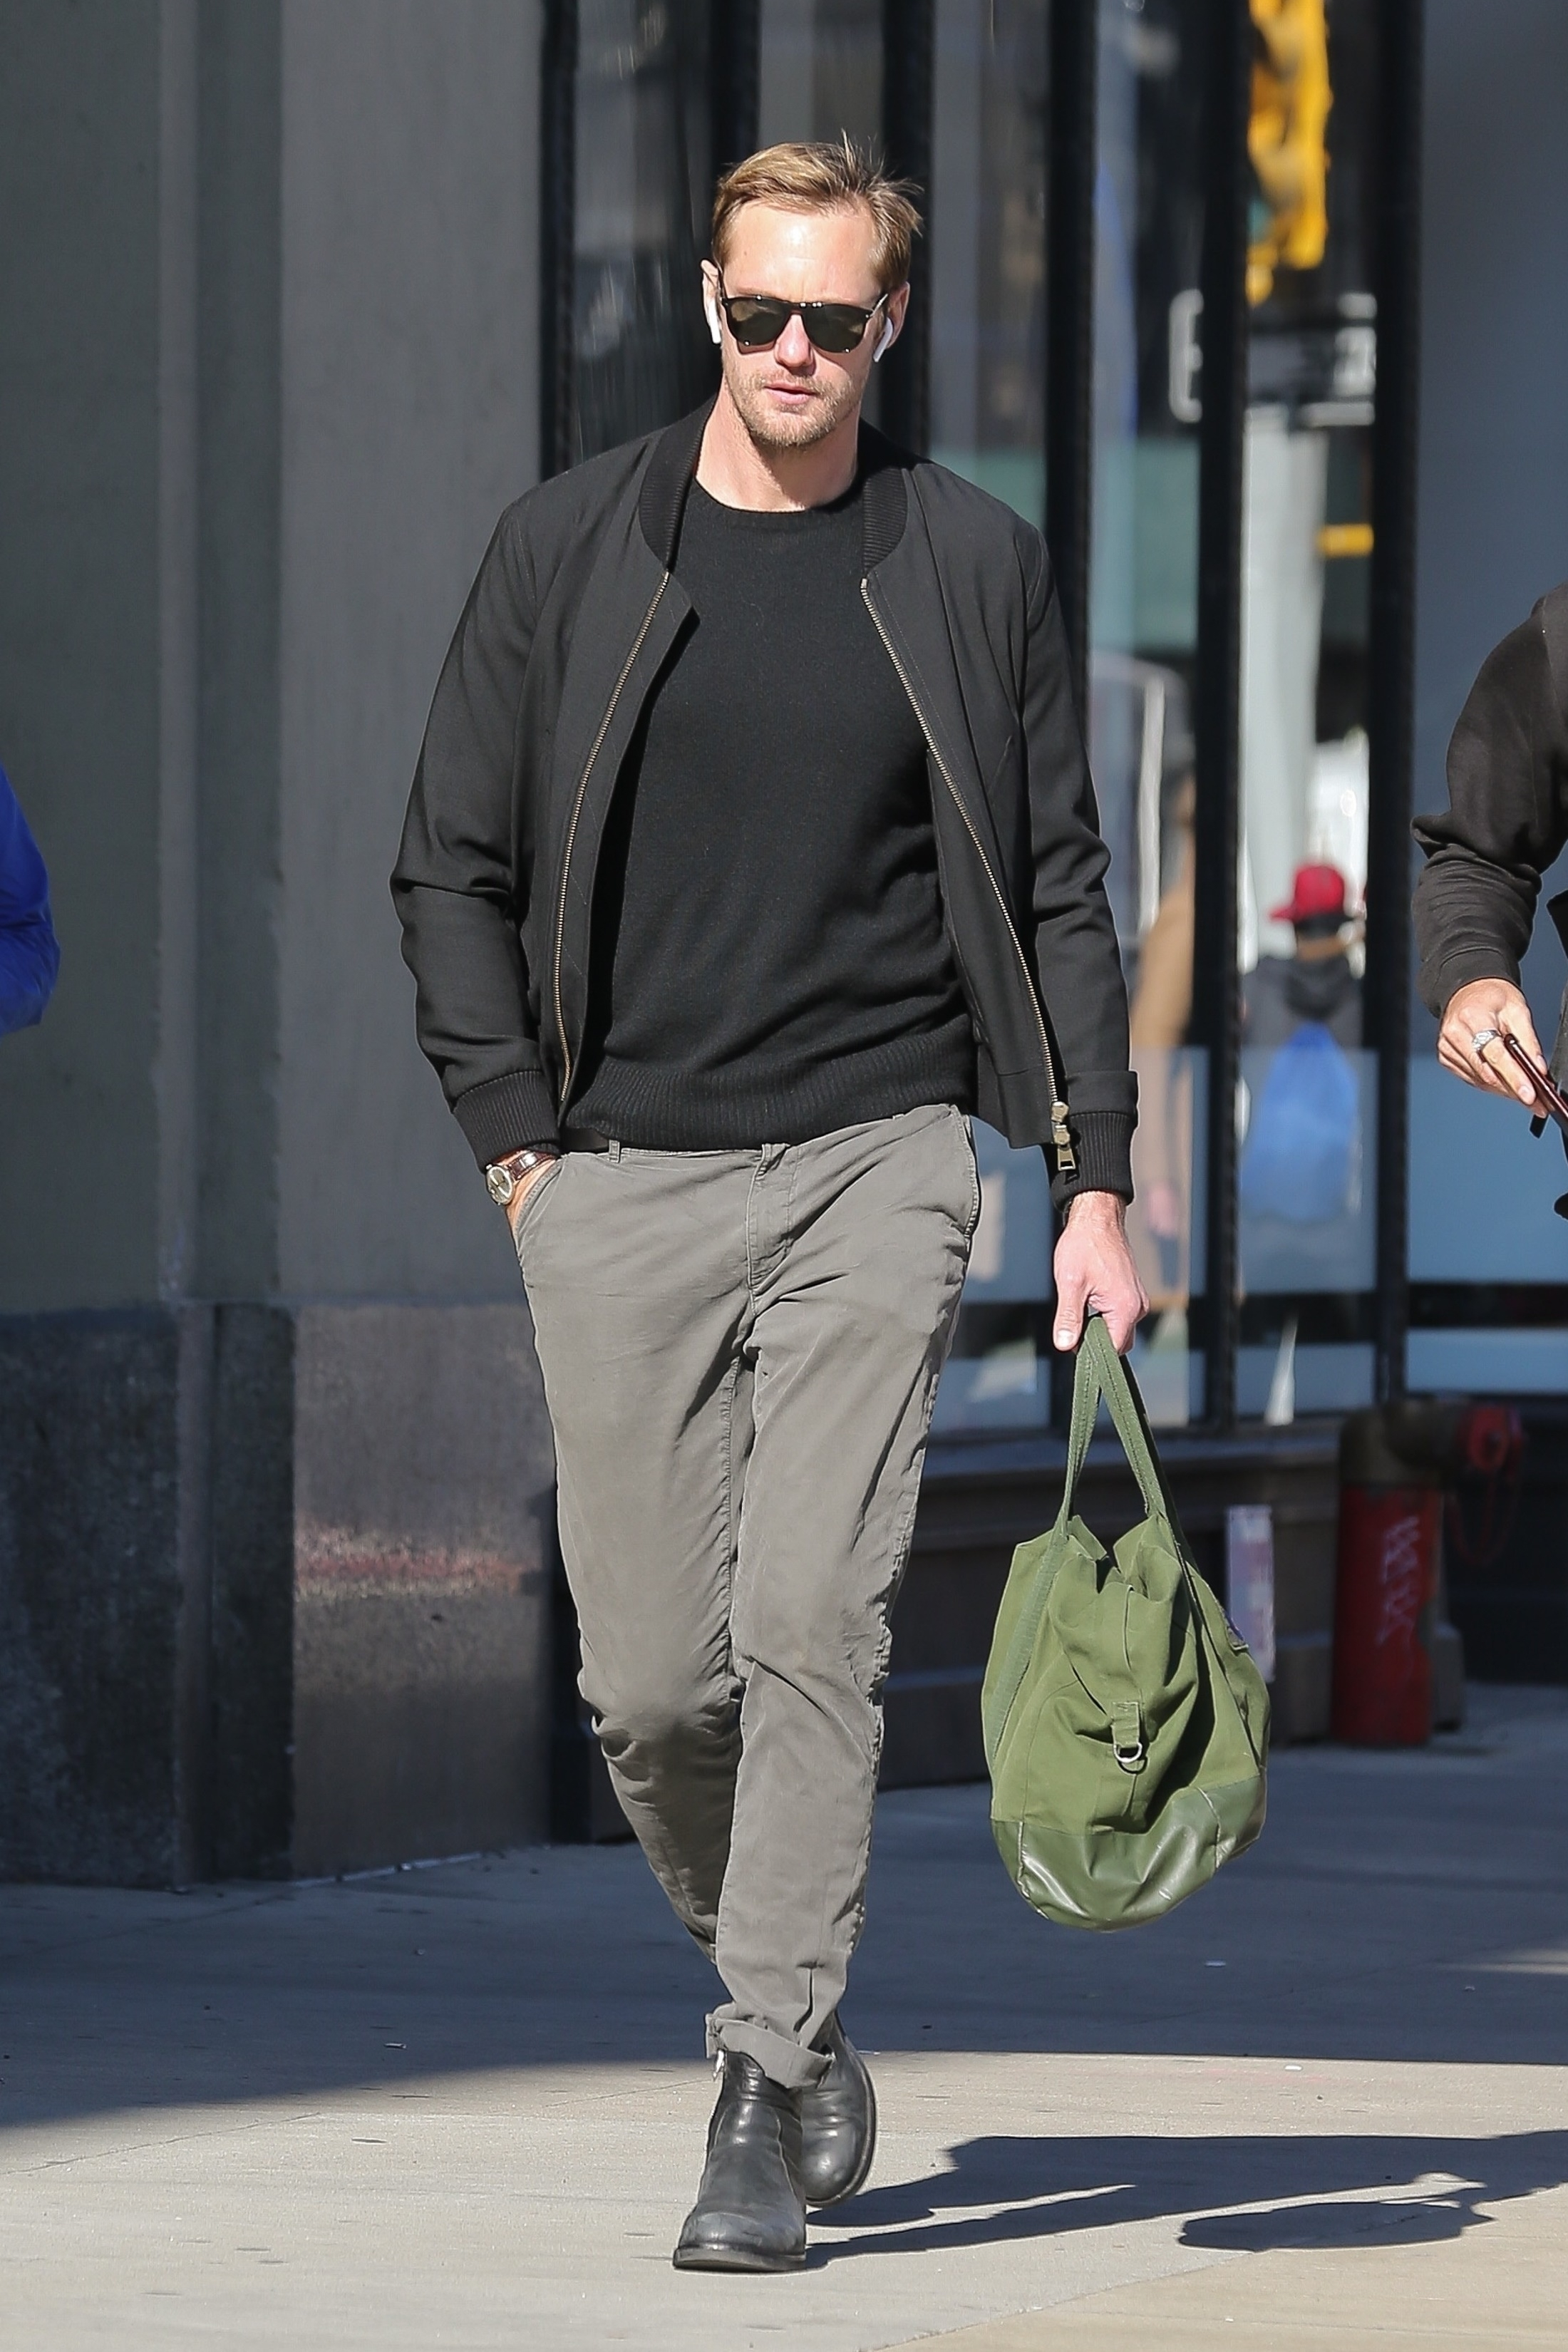 Alexander Skarsgard kept things casual while running some errands while out in New York City on Oct. 23, 2018.